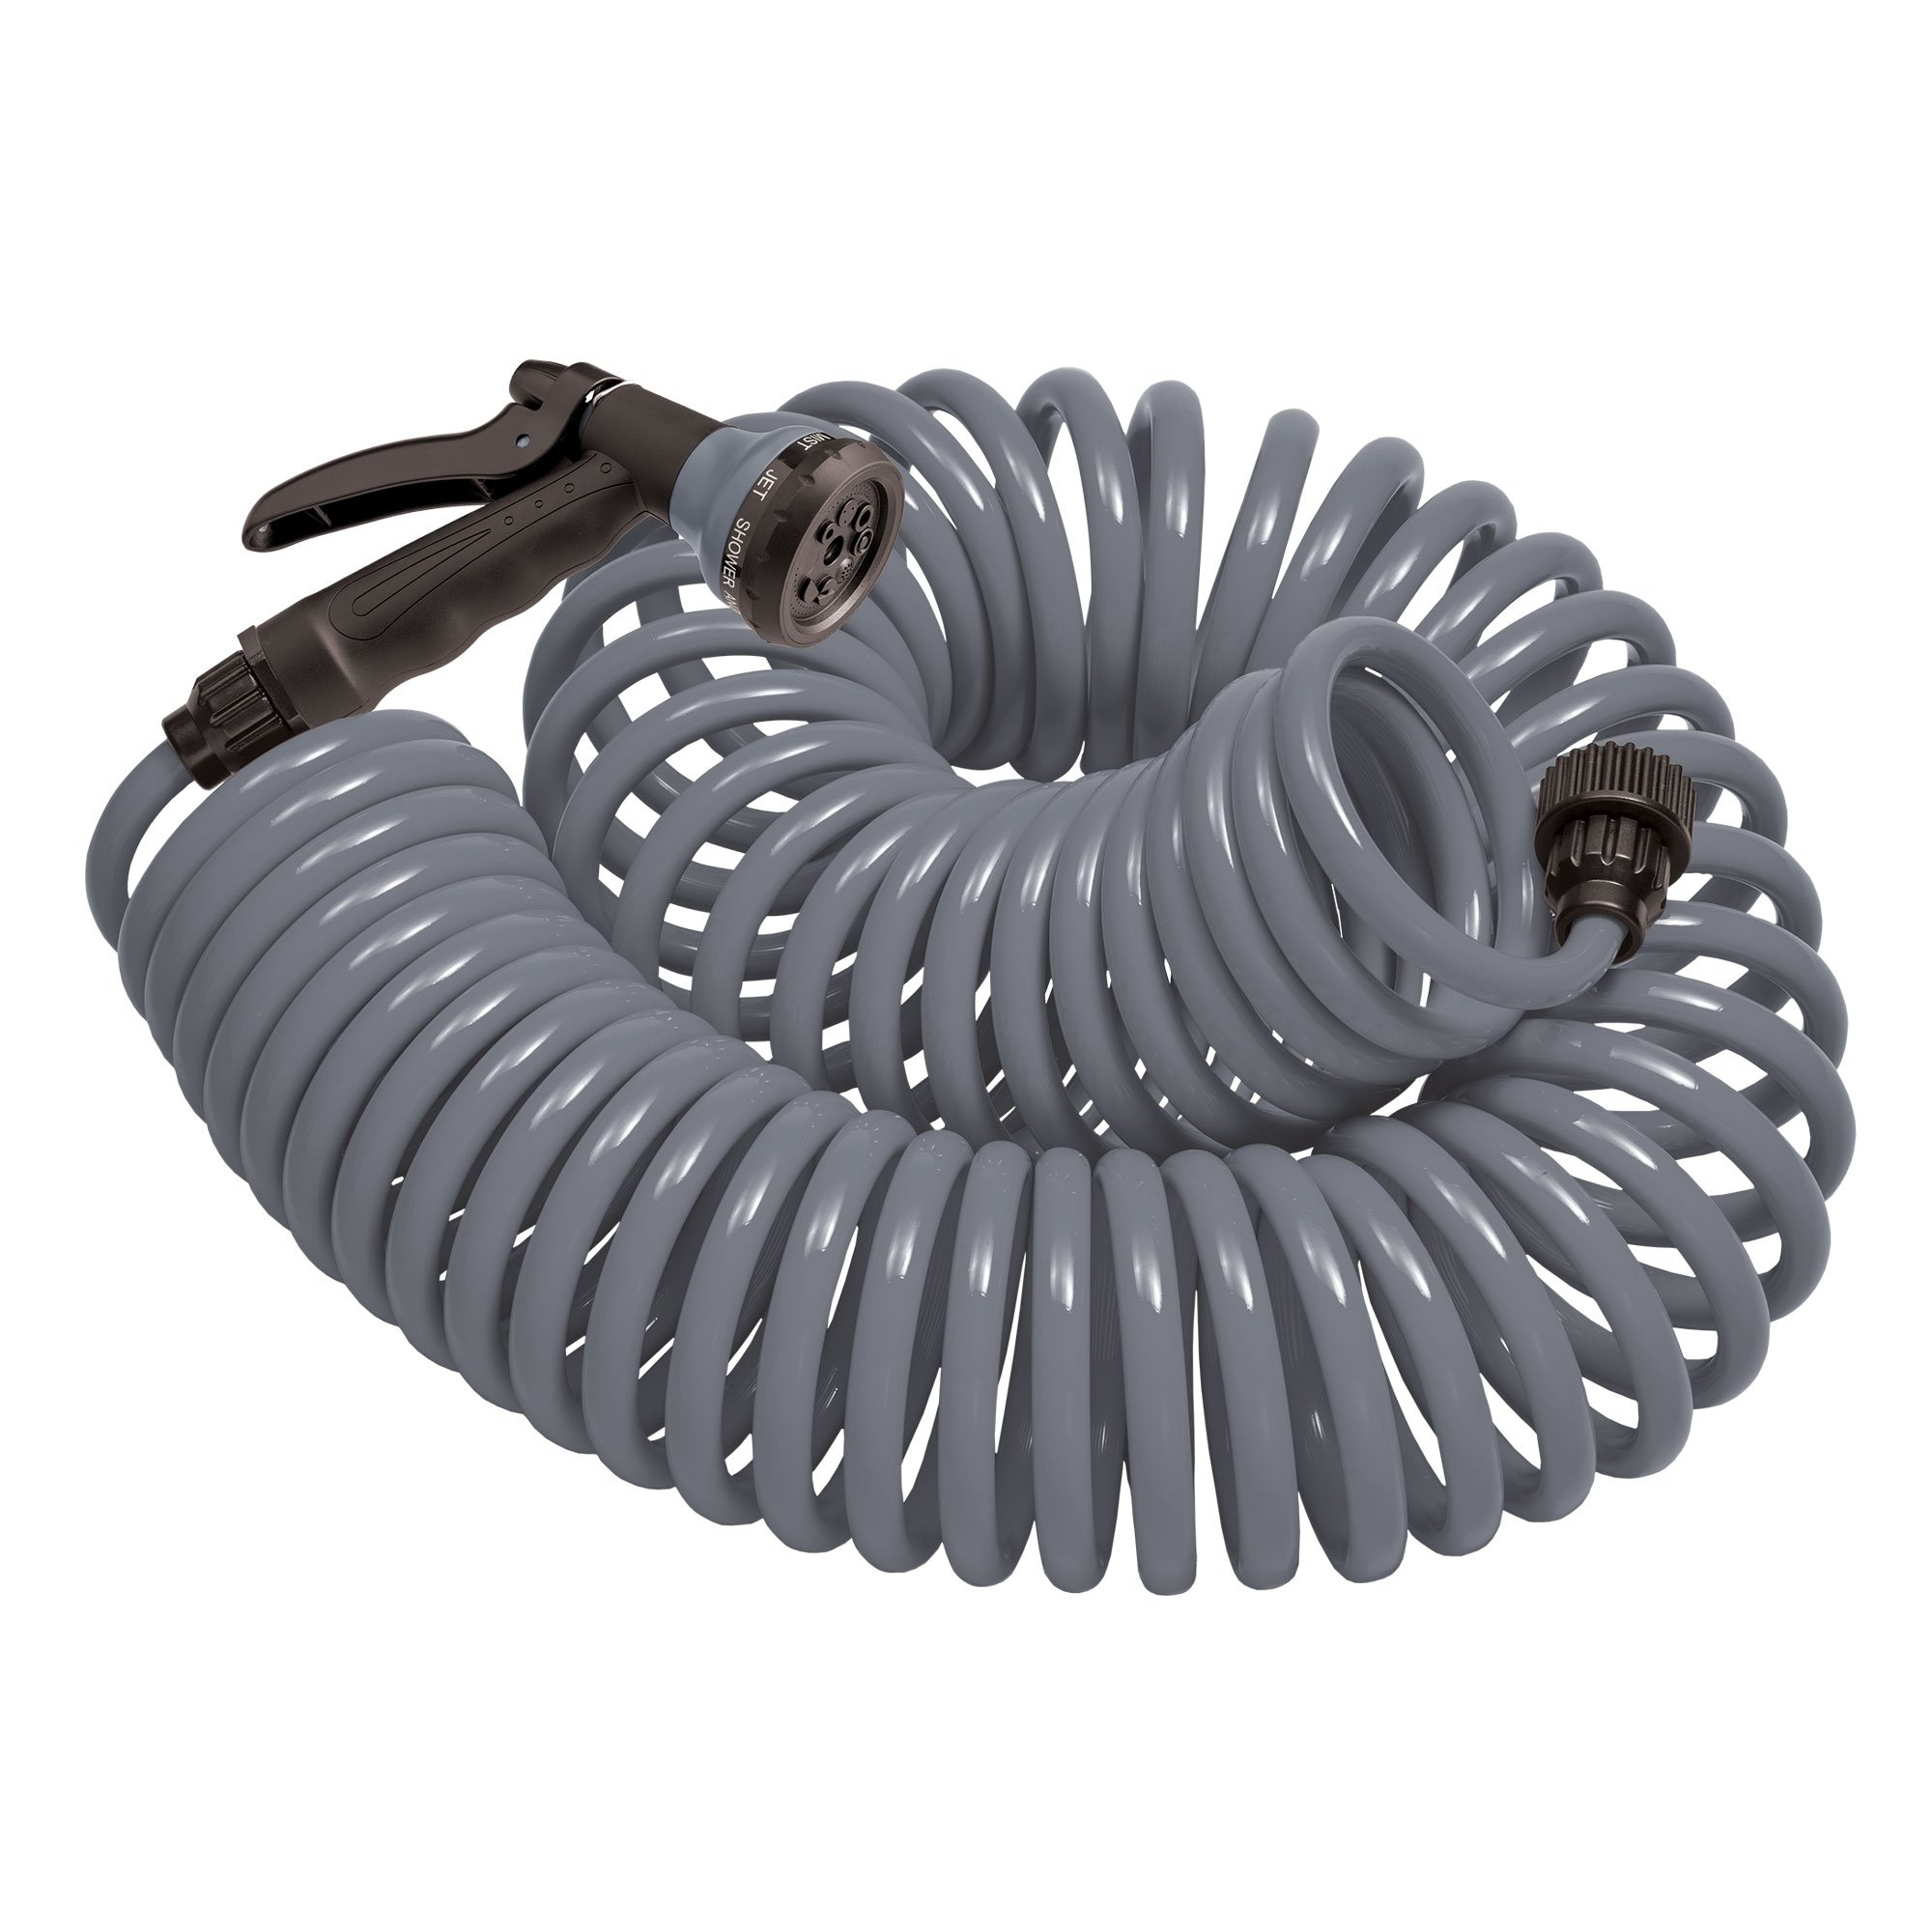 Orbit 27560 50-Foot Coil Hose with Nozzle, Gray